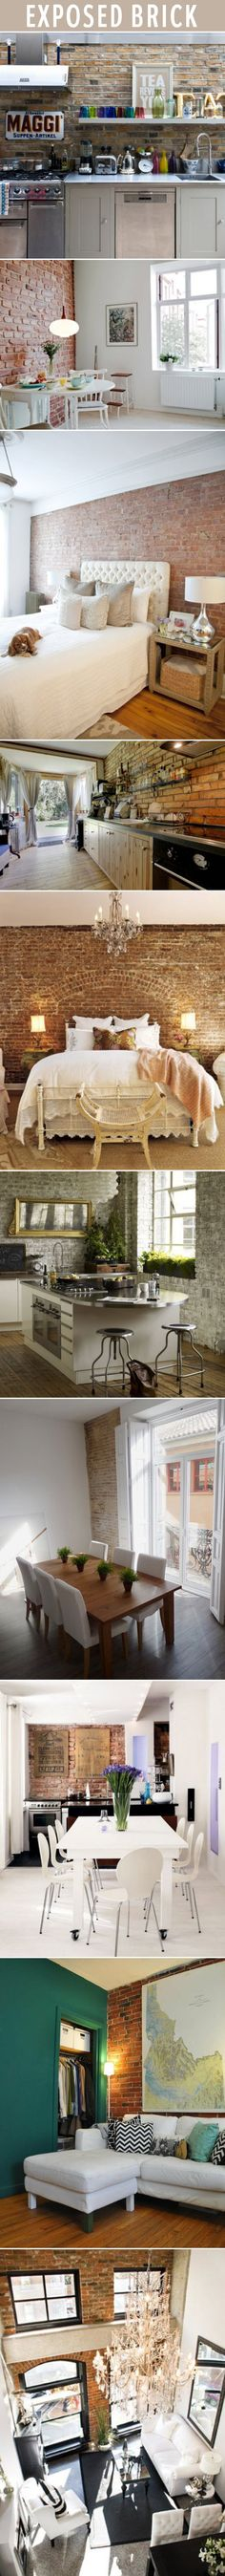 exposed brick love